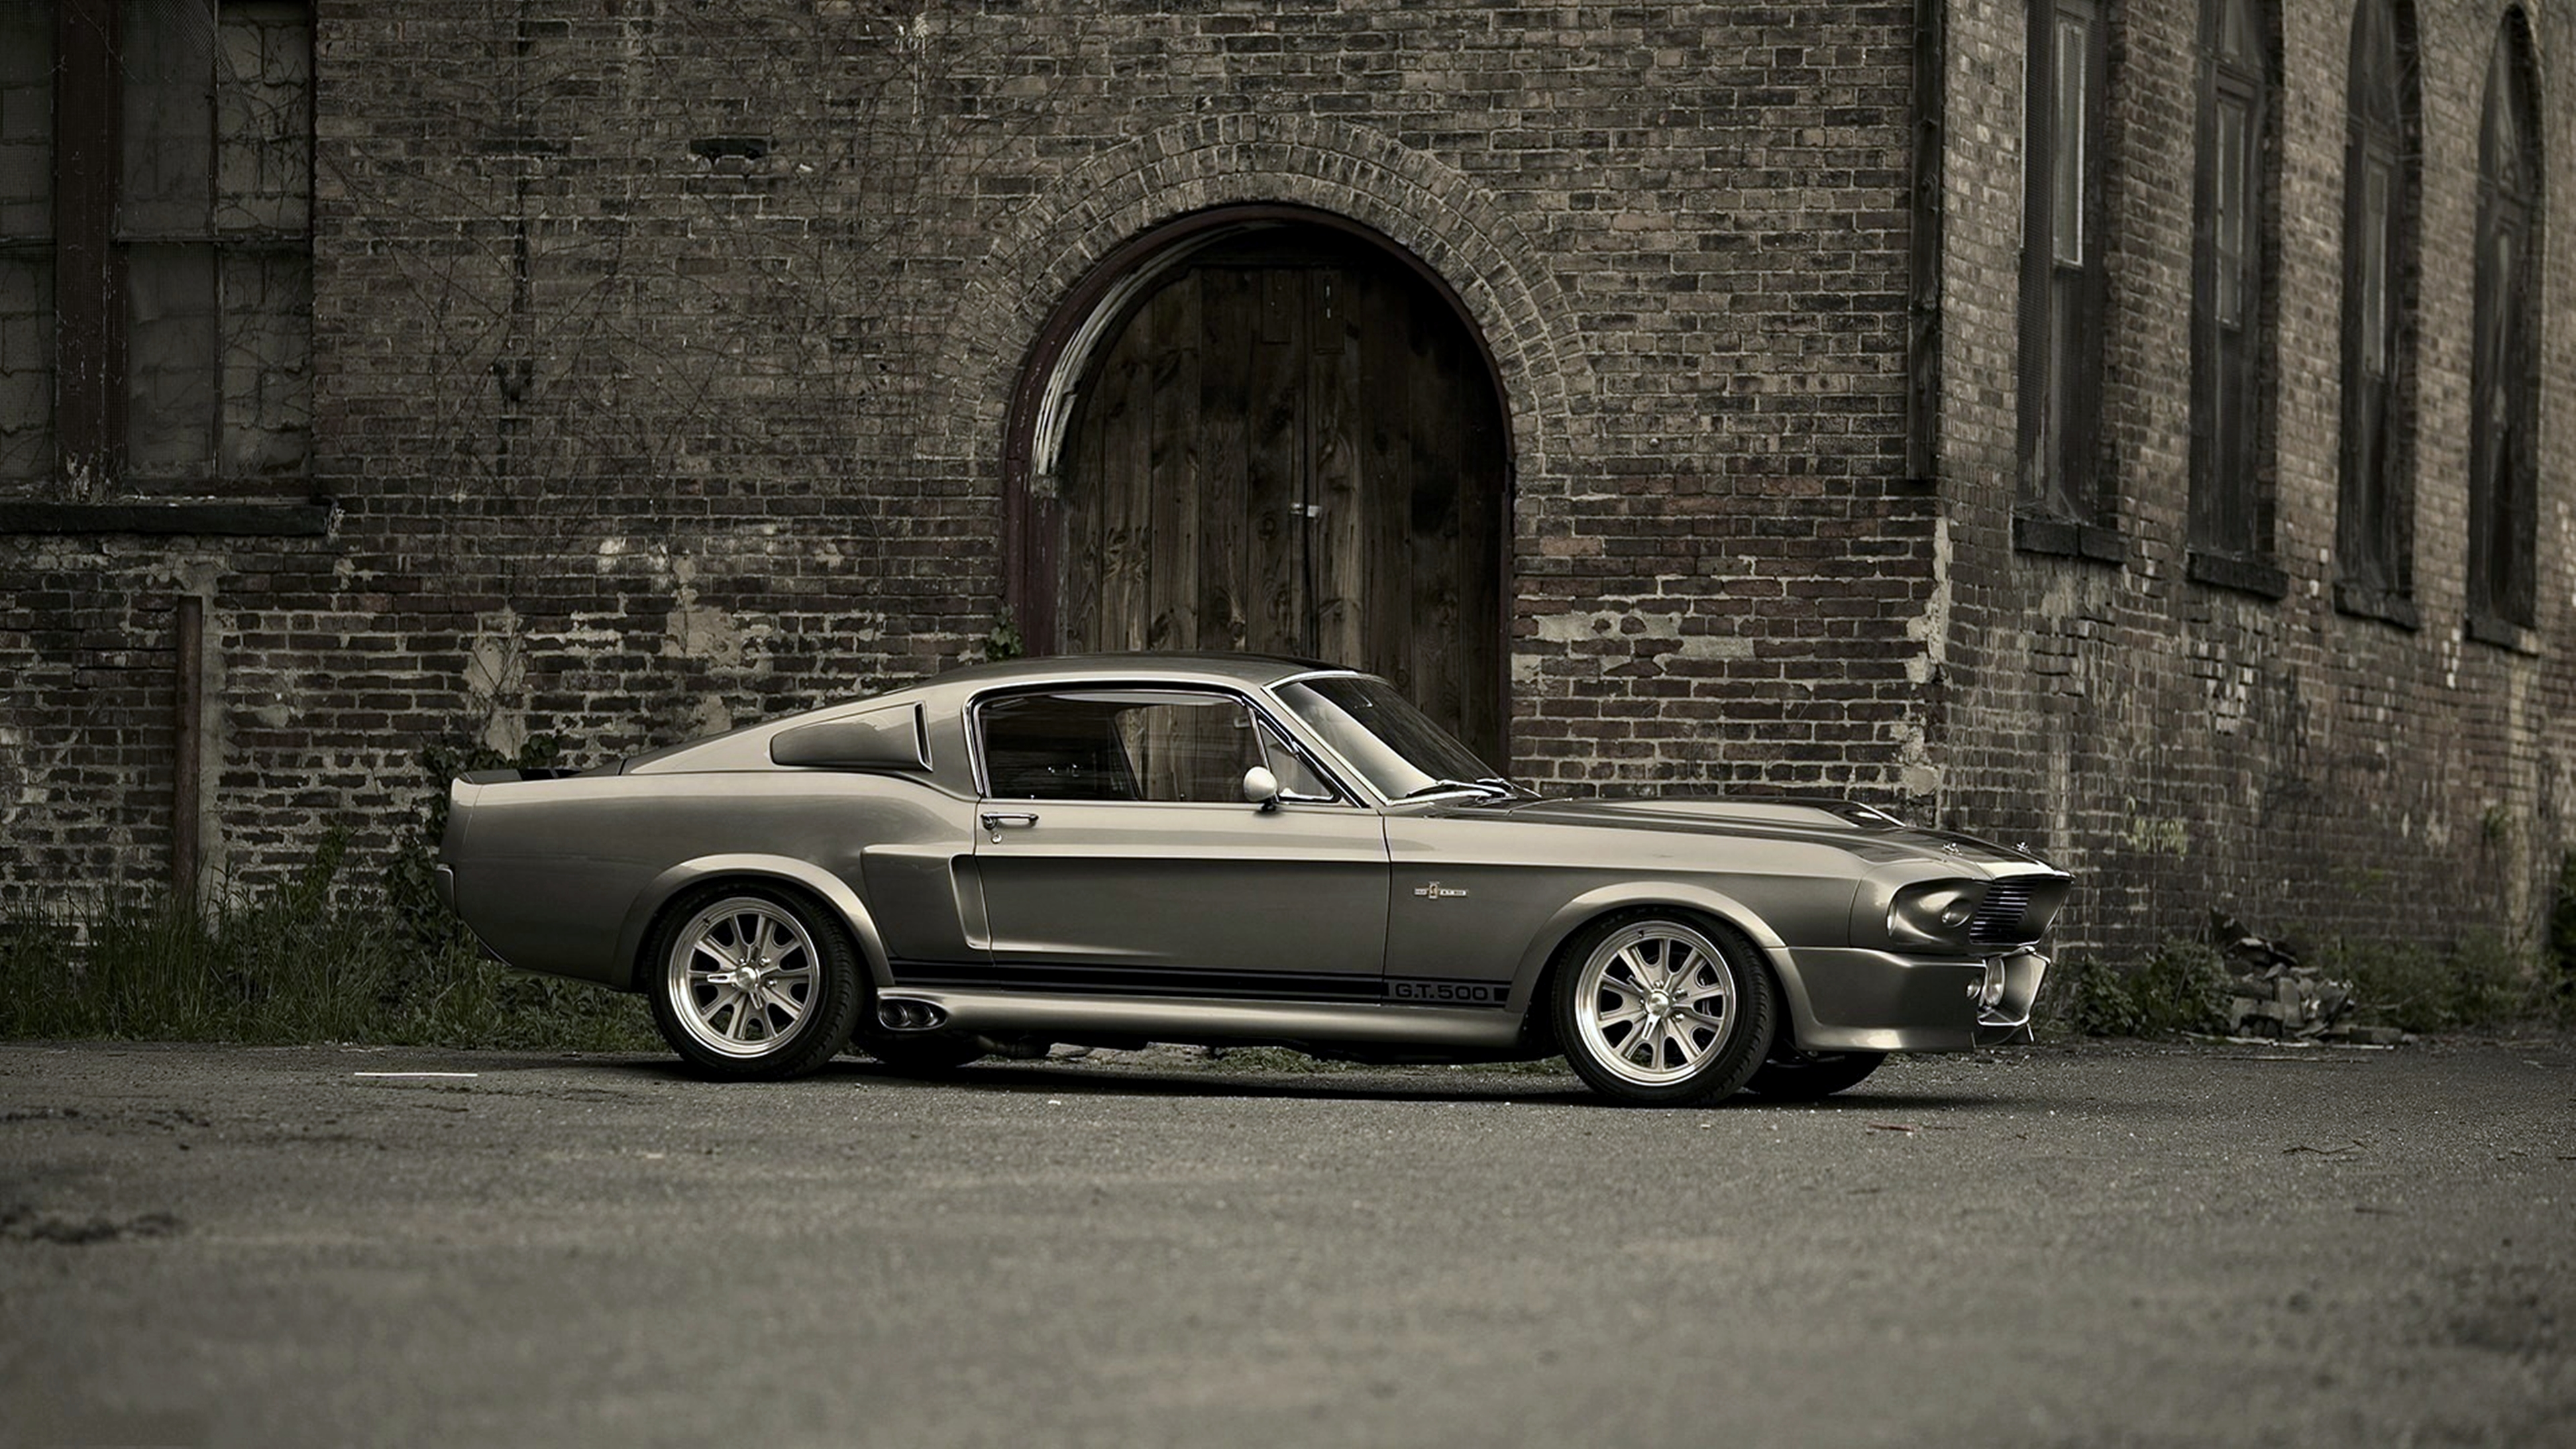 Ford Mustang Shelby GT500 Wallpapers